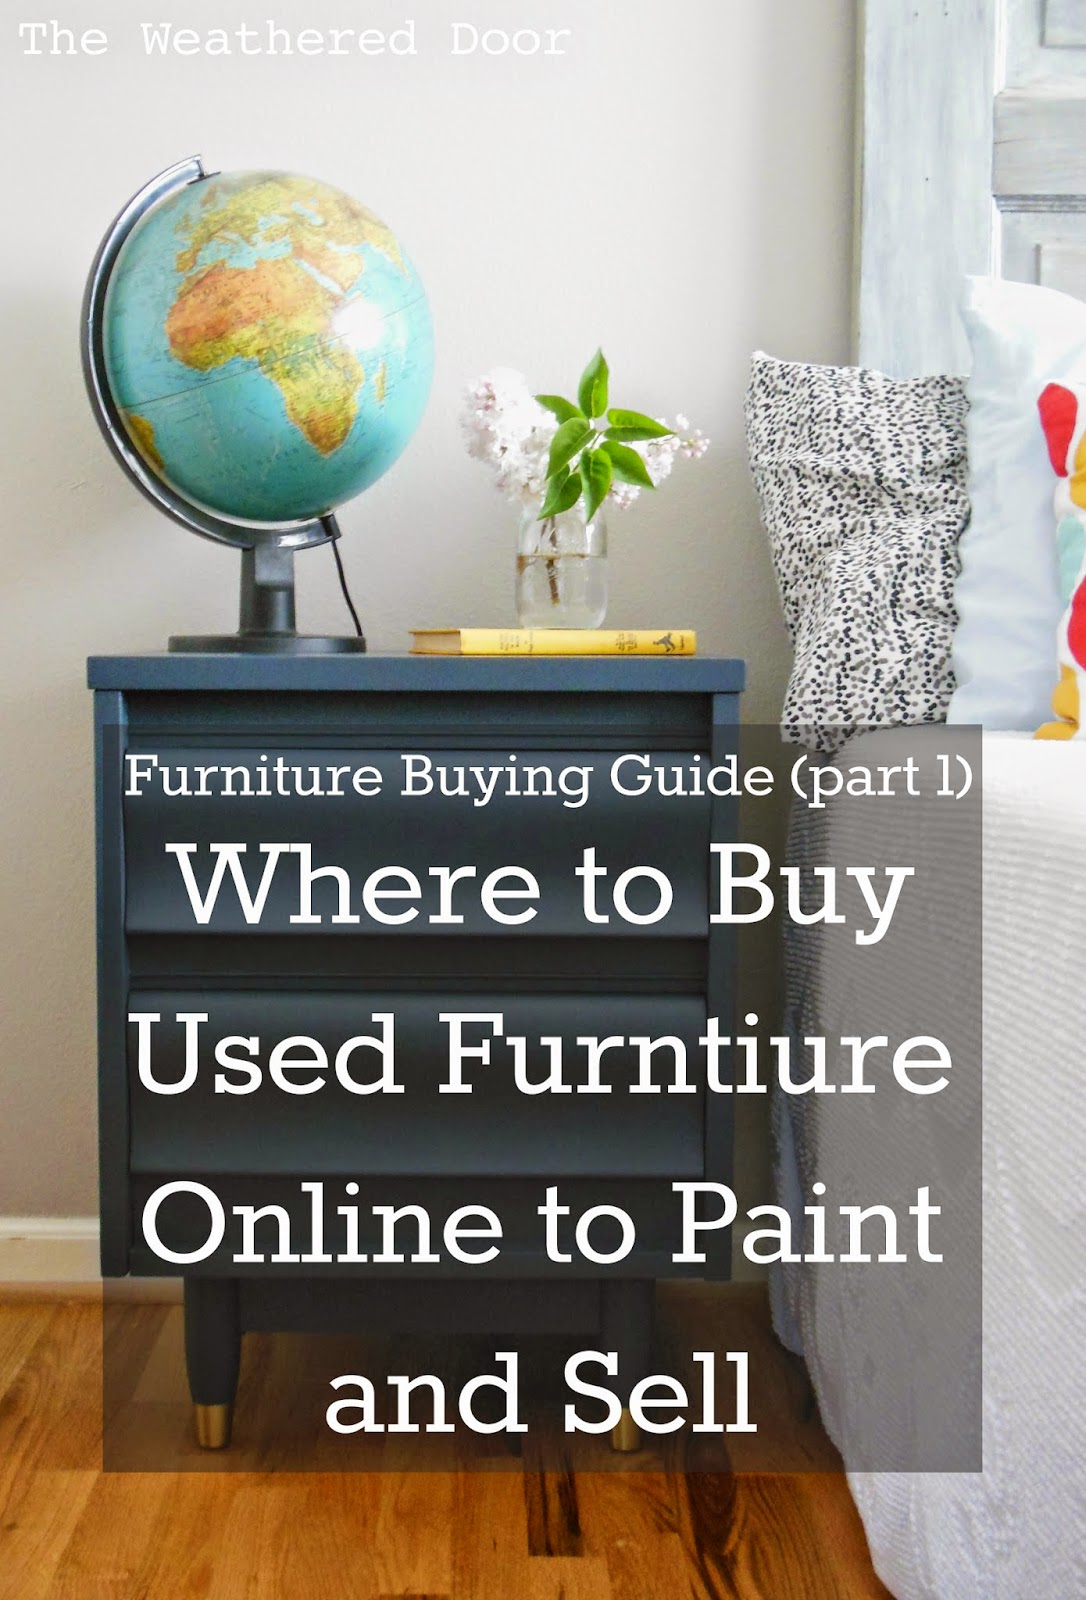 Furniture buying guide where to look for and buy used for Used furniture online